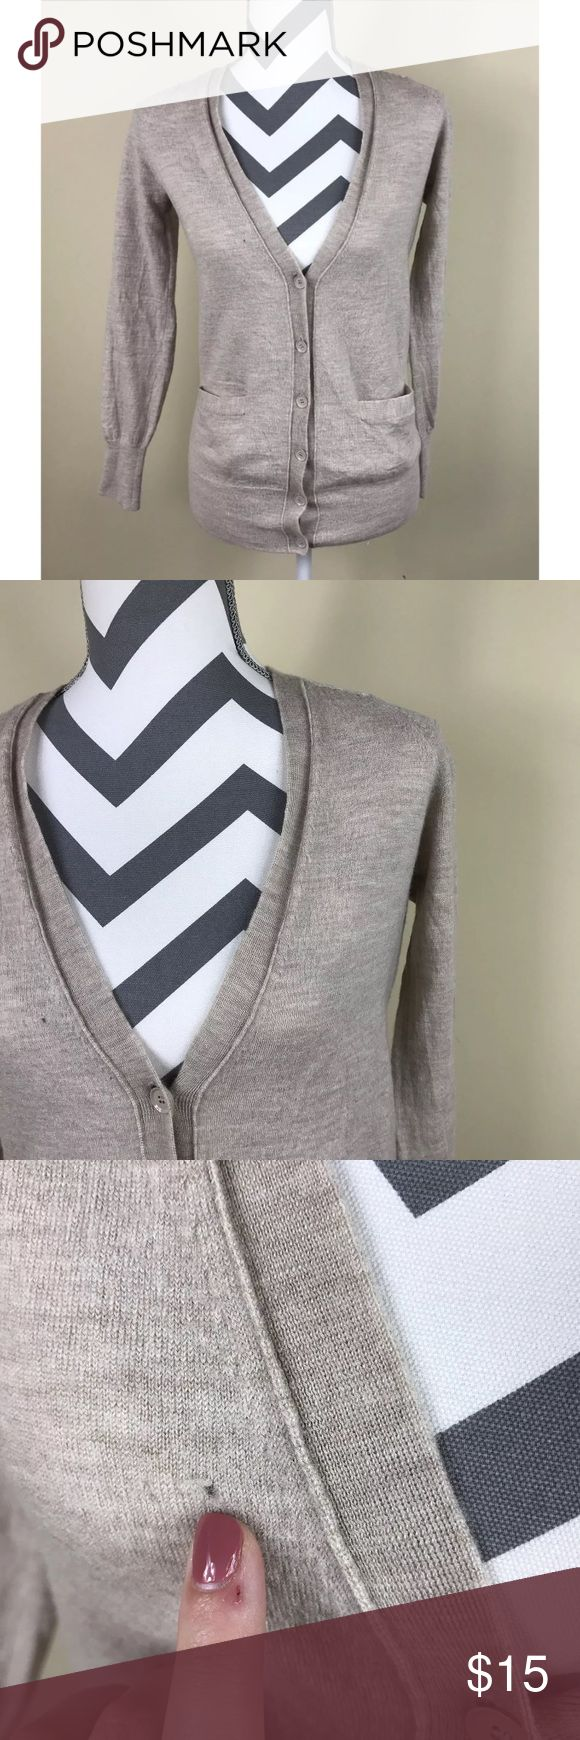 """{J Crew}Tan Wool Long Sleeve Button Down Cardigan Very Good Pre-loved Condition -- there is a moth hole on the front as noted in the picture  Size: Women's Medium Measured laying down flat: 25.5"""" long, 16.5"""" long sleeves, 23.5"""" long sleeves Material: 100% Merino Wool Description: Button Down front, Y-neckline, long sleeves, front pocket, stretchy, thicker material, classic solid color, the cardigan is kind of shaggy but that's due to being wool material  Comes from a Smoke Free Home   ID…"""